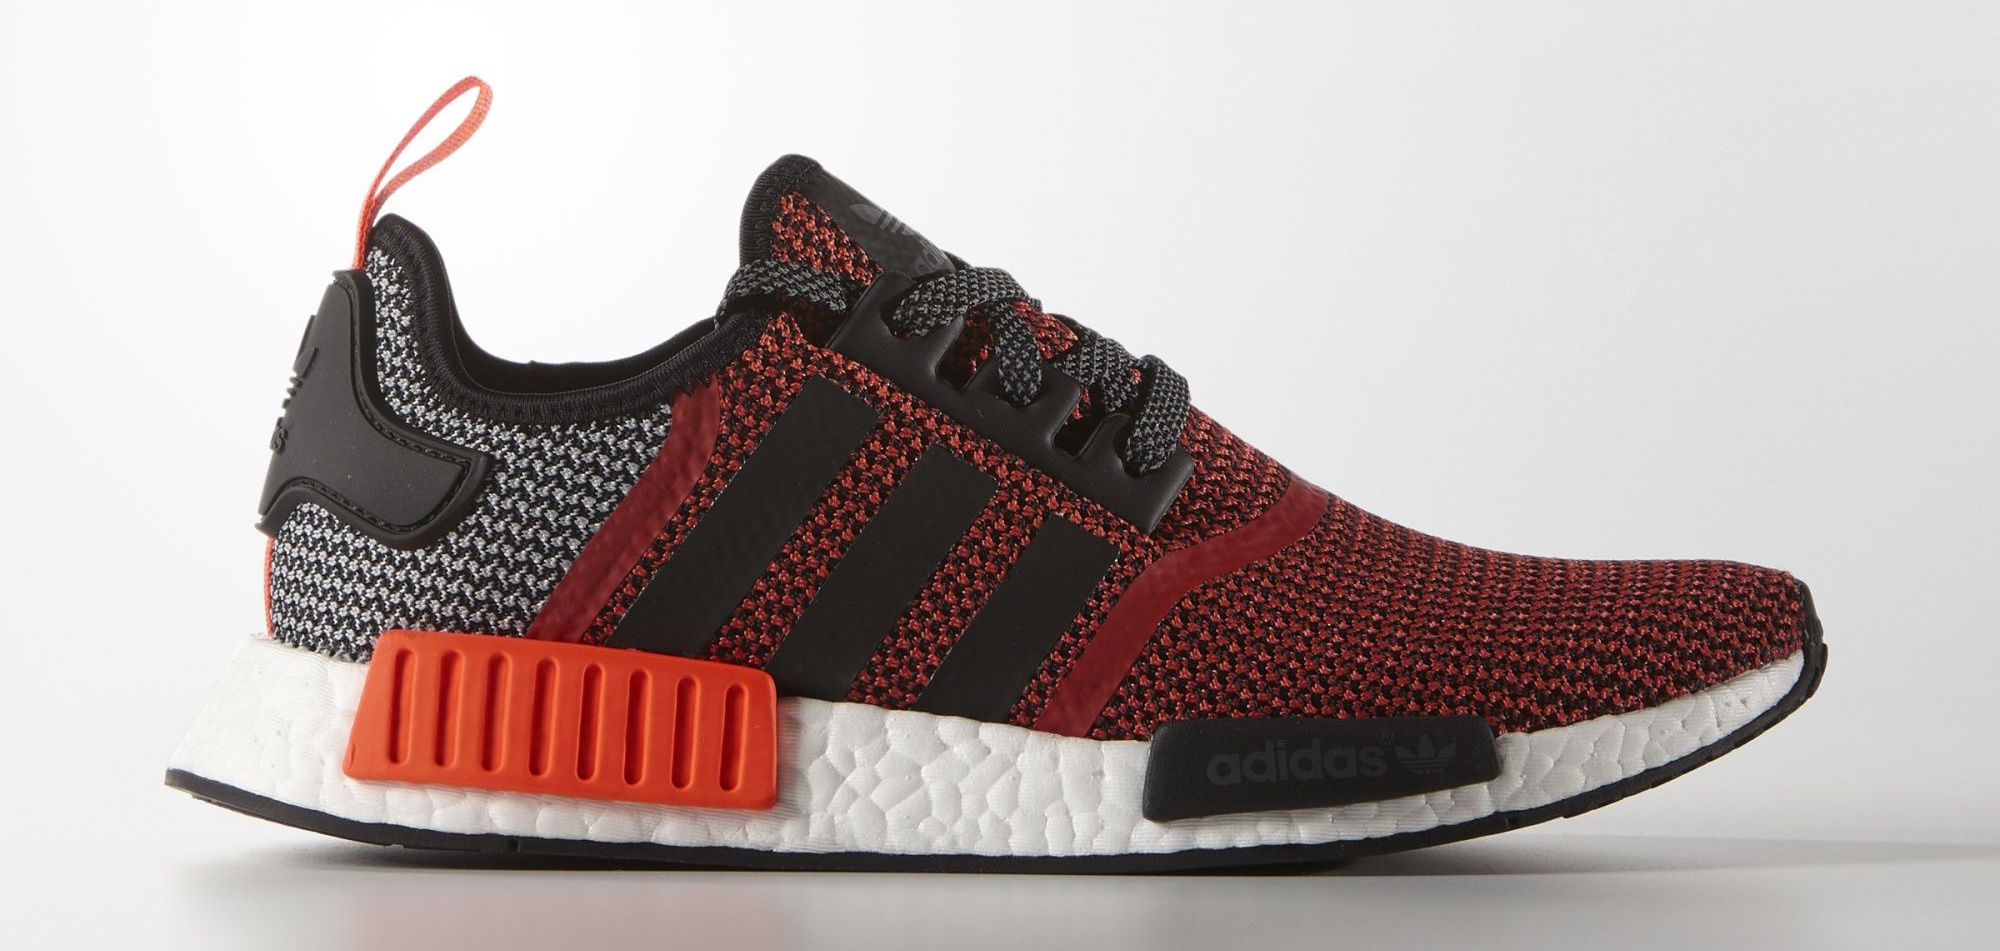 adidas nmd kids red Sale  47114be3010f